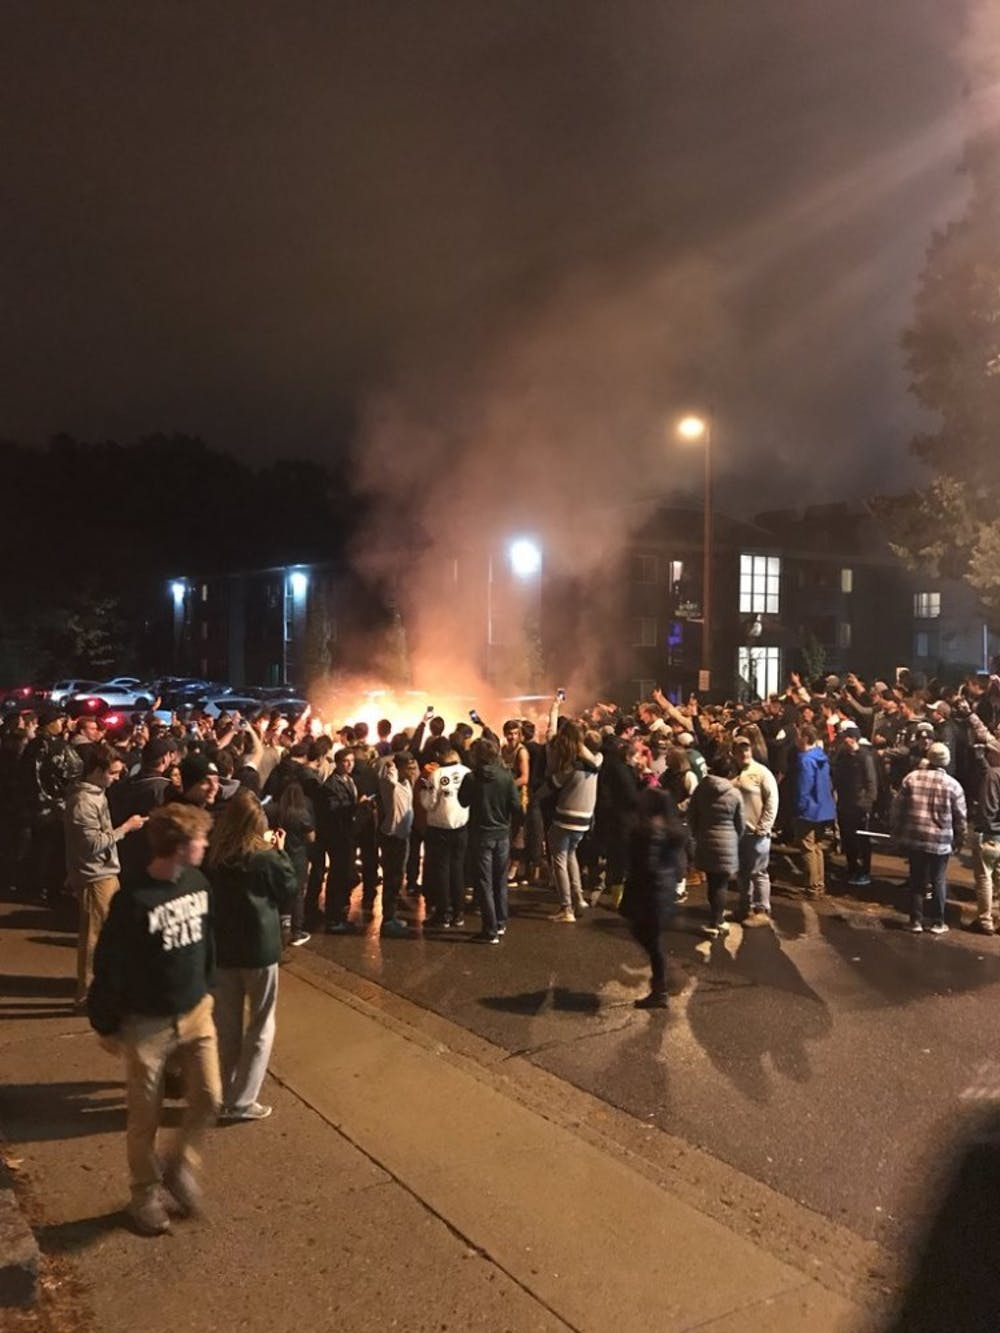 Dozens gather around furniture set on fire to celebrate MSU's win over Penn State. Officials extinguished the fire by approximately 7:40 p.m.